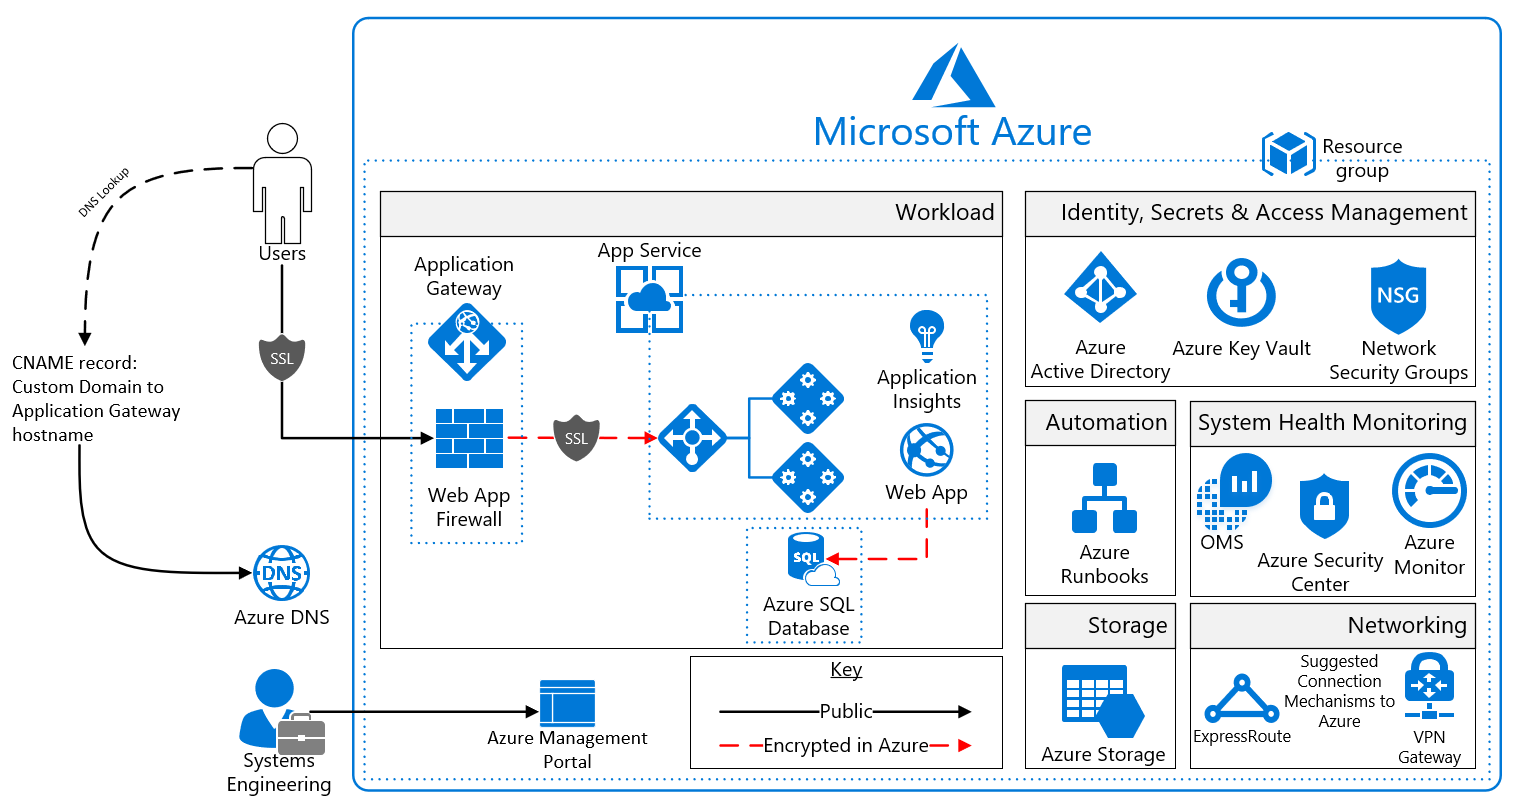 Azure security and compliance blueprint paas web application for paas web applicaiton for gdpr reference architecture diagram malvernweather Gallery